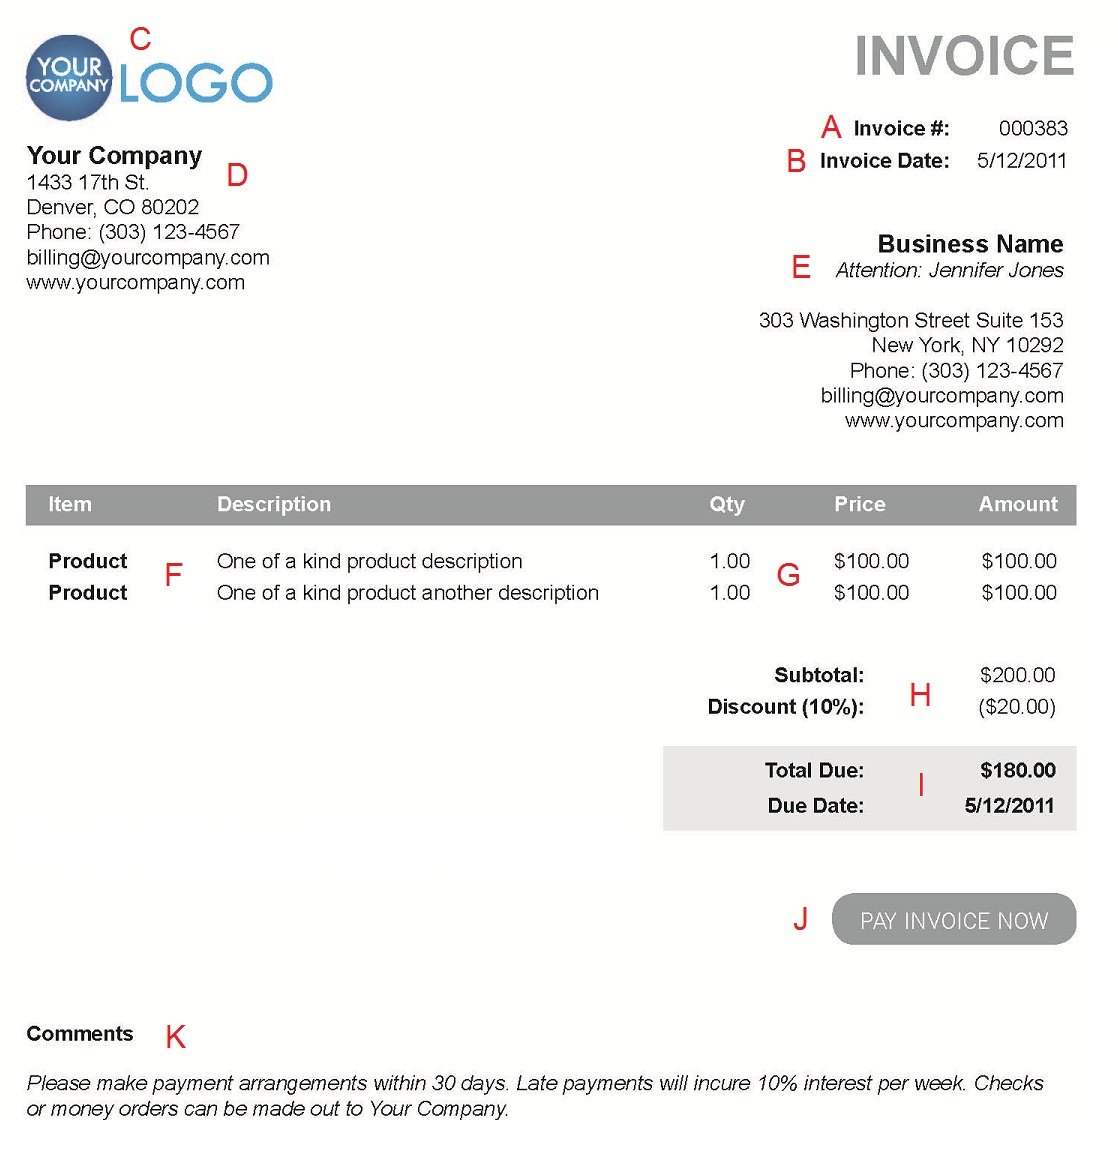 Proatmealus  Pleasing The  Different Sections Of An Electronic Payment Invoice With Extraordinary A  With Delectable Best Program To Make Invoices Also How To Create An Invoice In Quickbooks In Addition Vertex Invoice Template And Requesting Payment For Overdue Invoice As Well As Physical Therapy Invoice Template Additionally Time And Material Invoice Template From Paysimplecom With Proatmealus  Extraordinary The  Different Sections Of An Electronic Payment Invoice With Delectable A  And Pleasing Best Program To Make Invoices Also How To Create An Invoice In Quickbooks In Addition Vertex Invoice Template From Paysimplecom